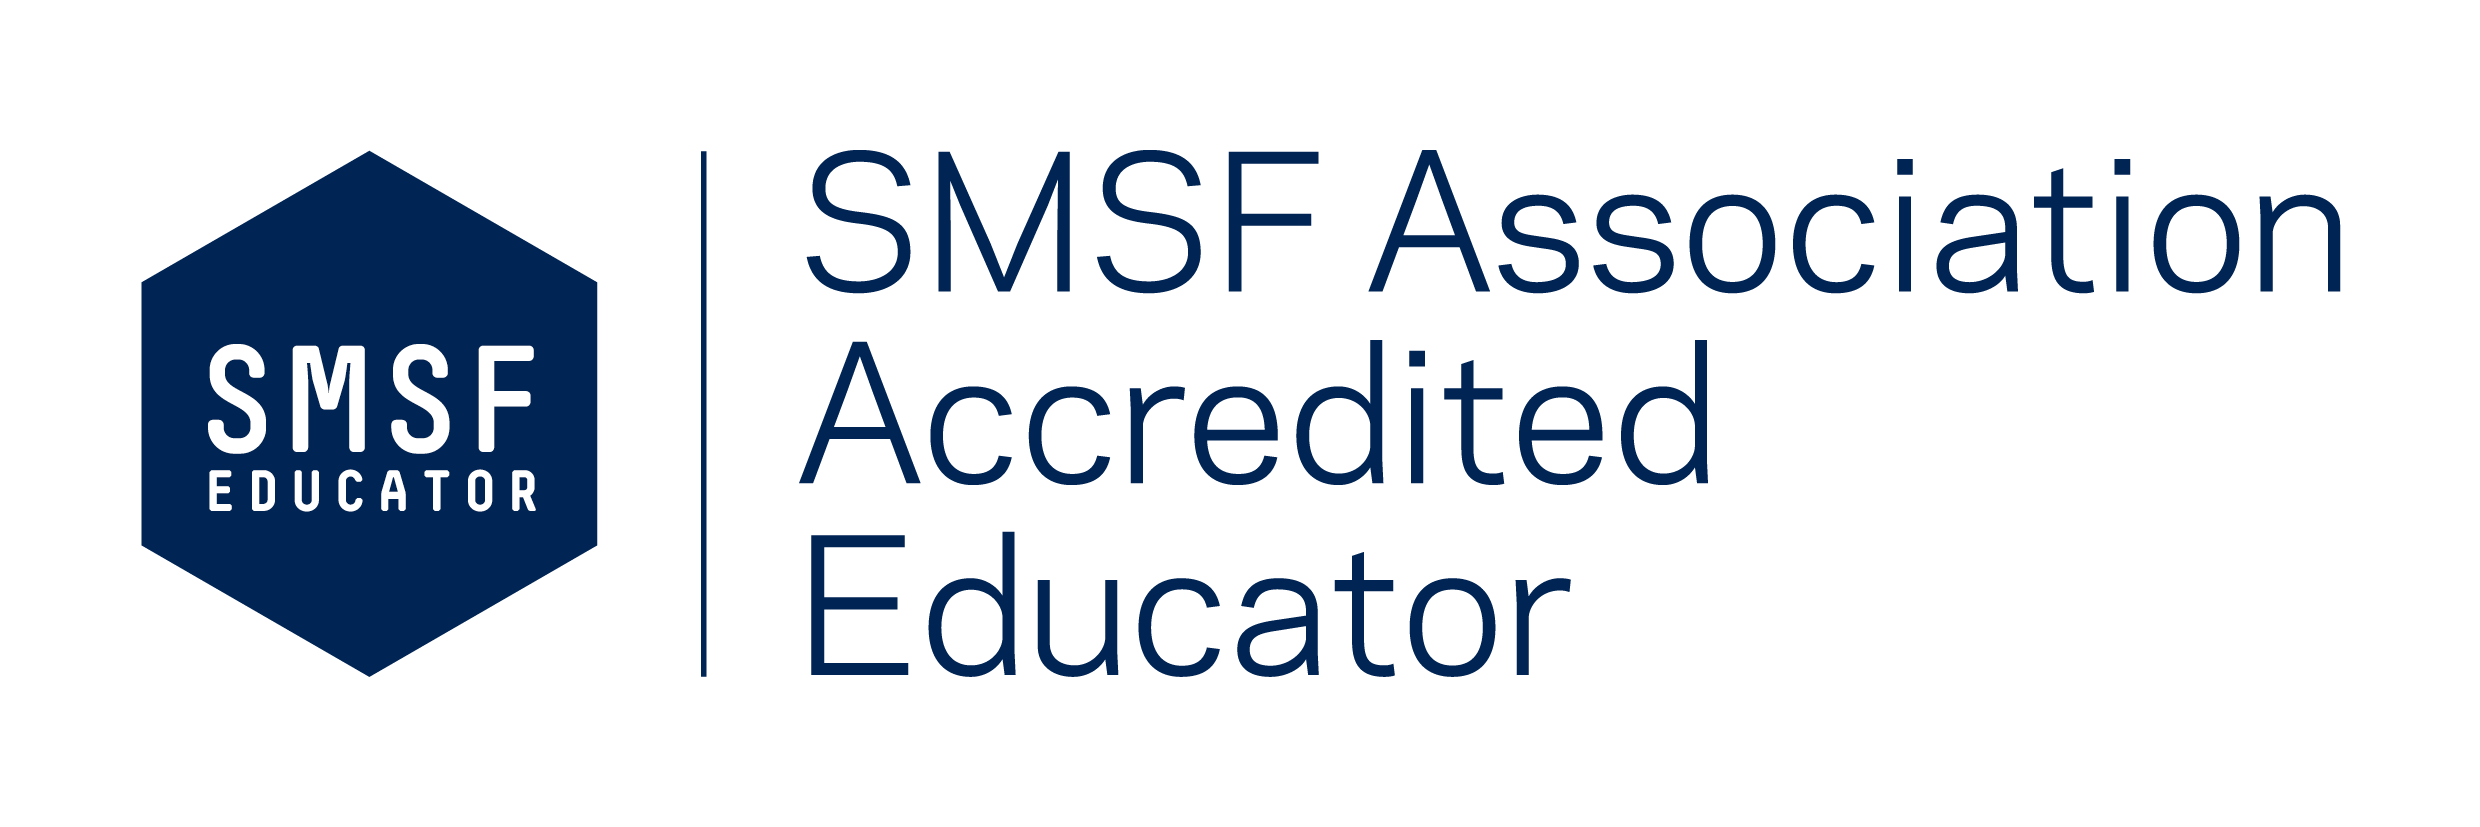 smsf association educator logo